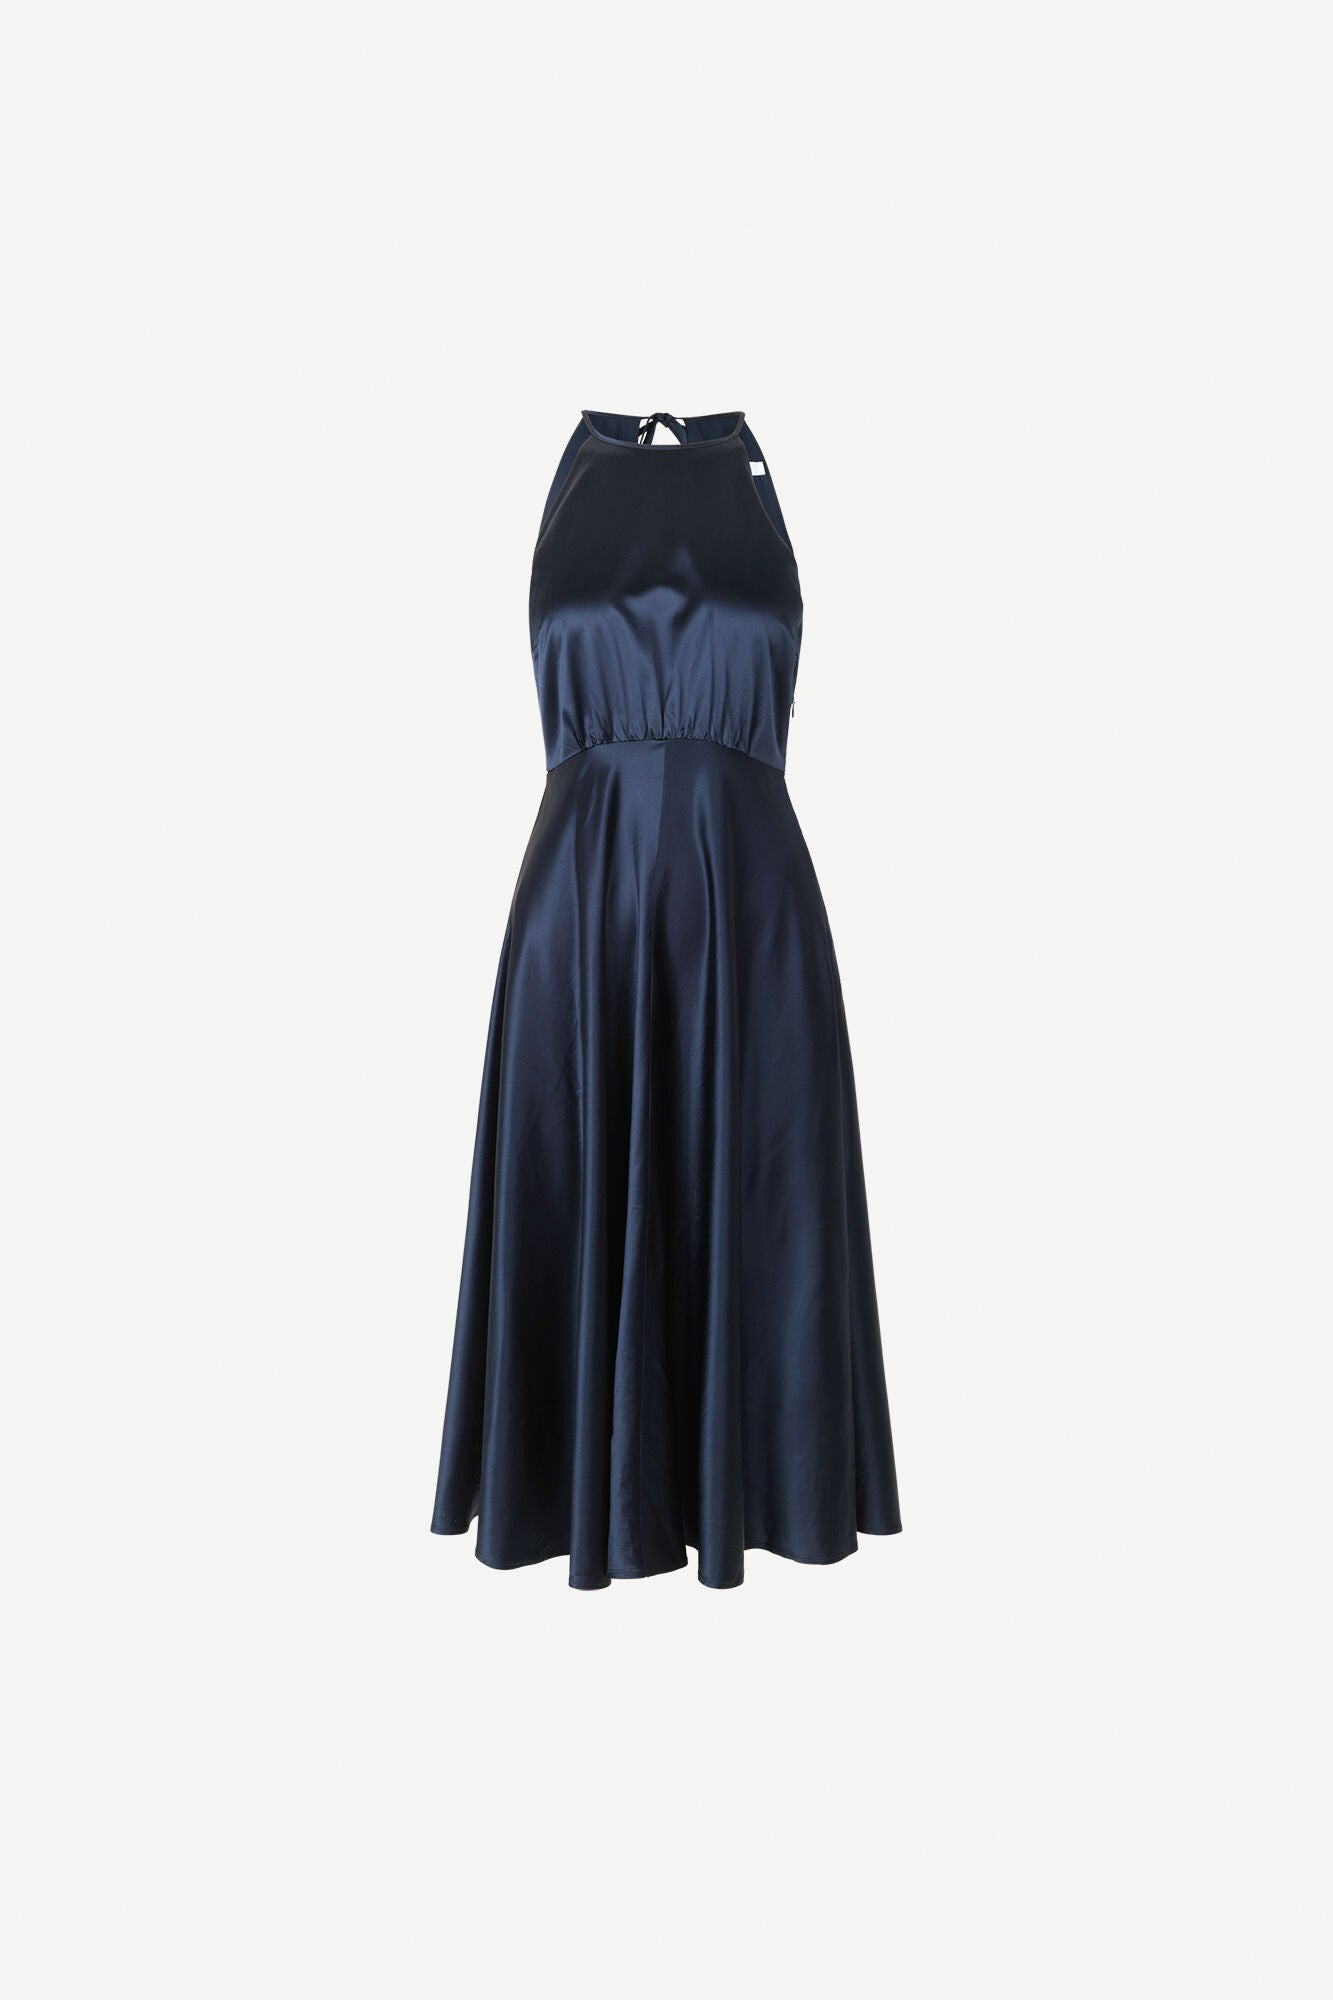 SAMSØE SAMSØE Rhea dress